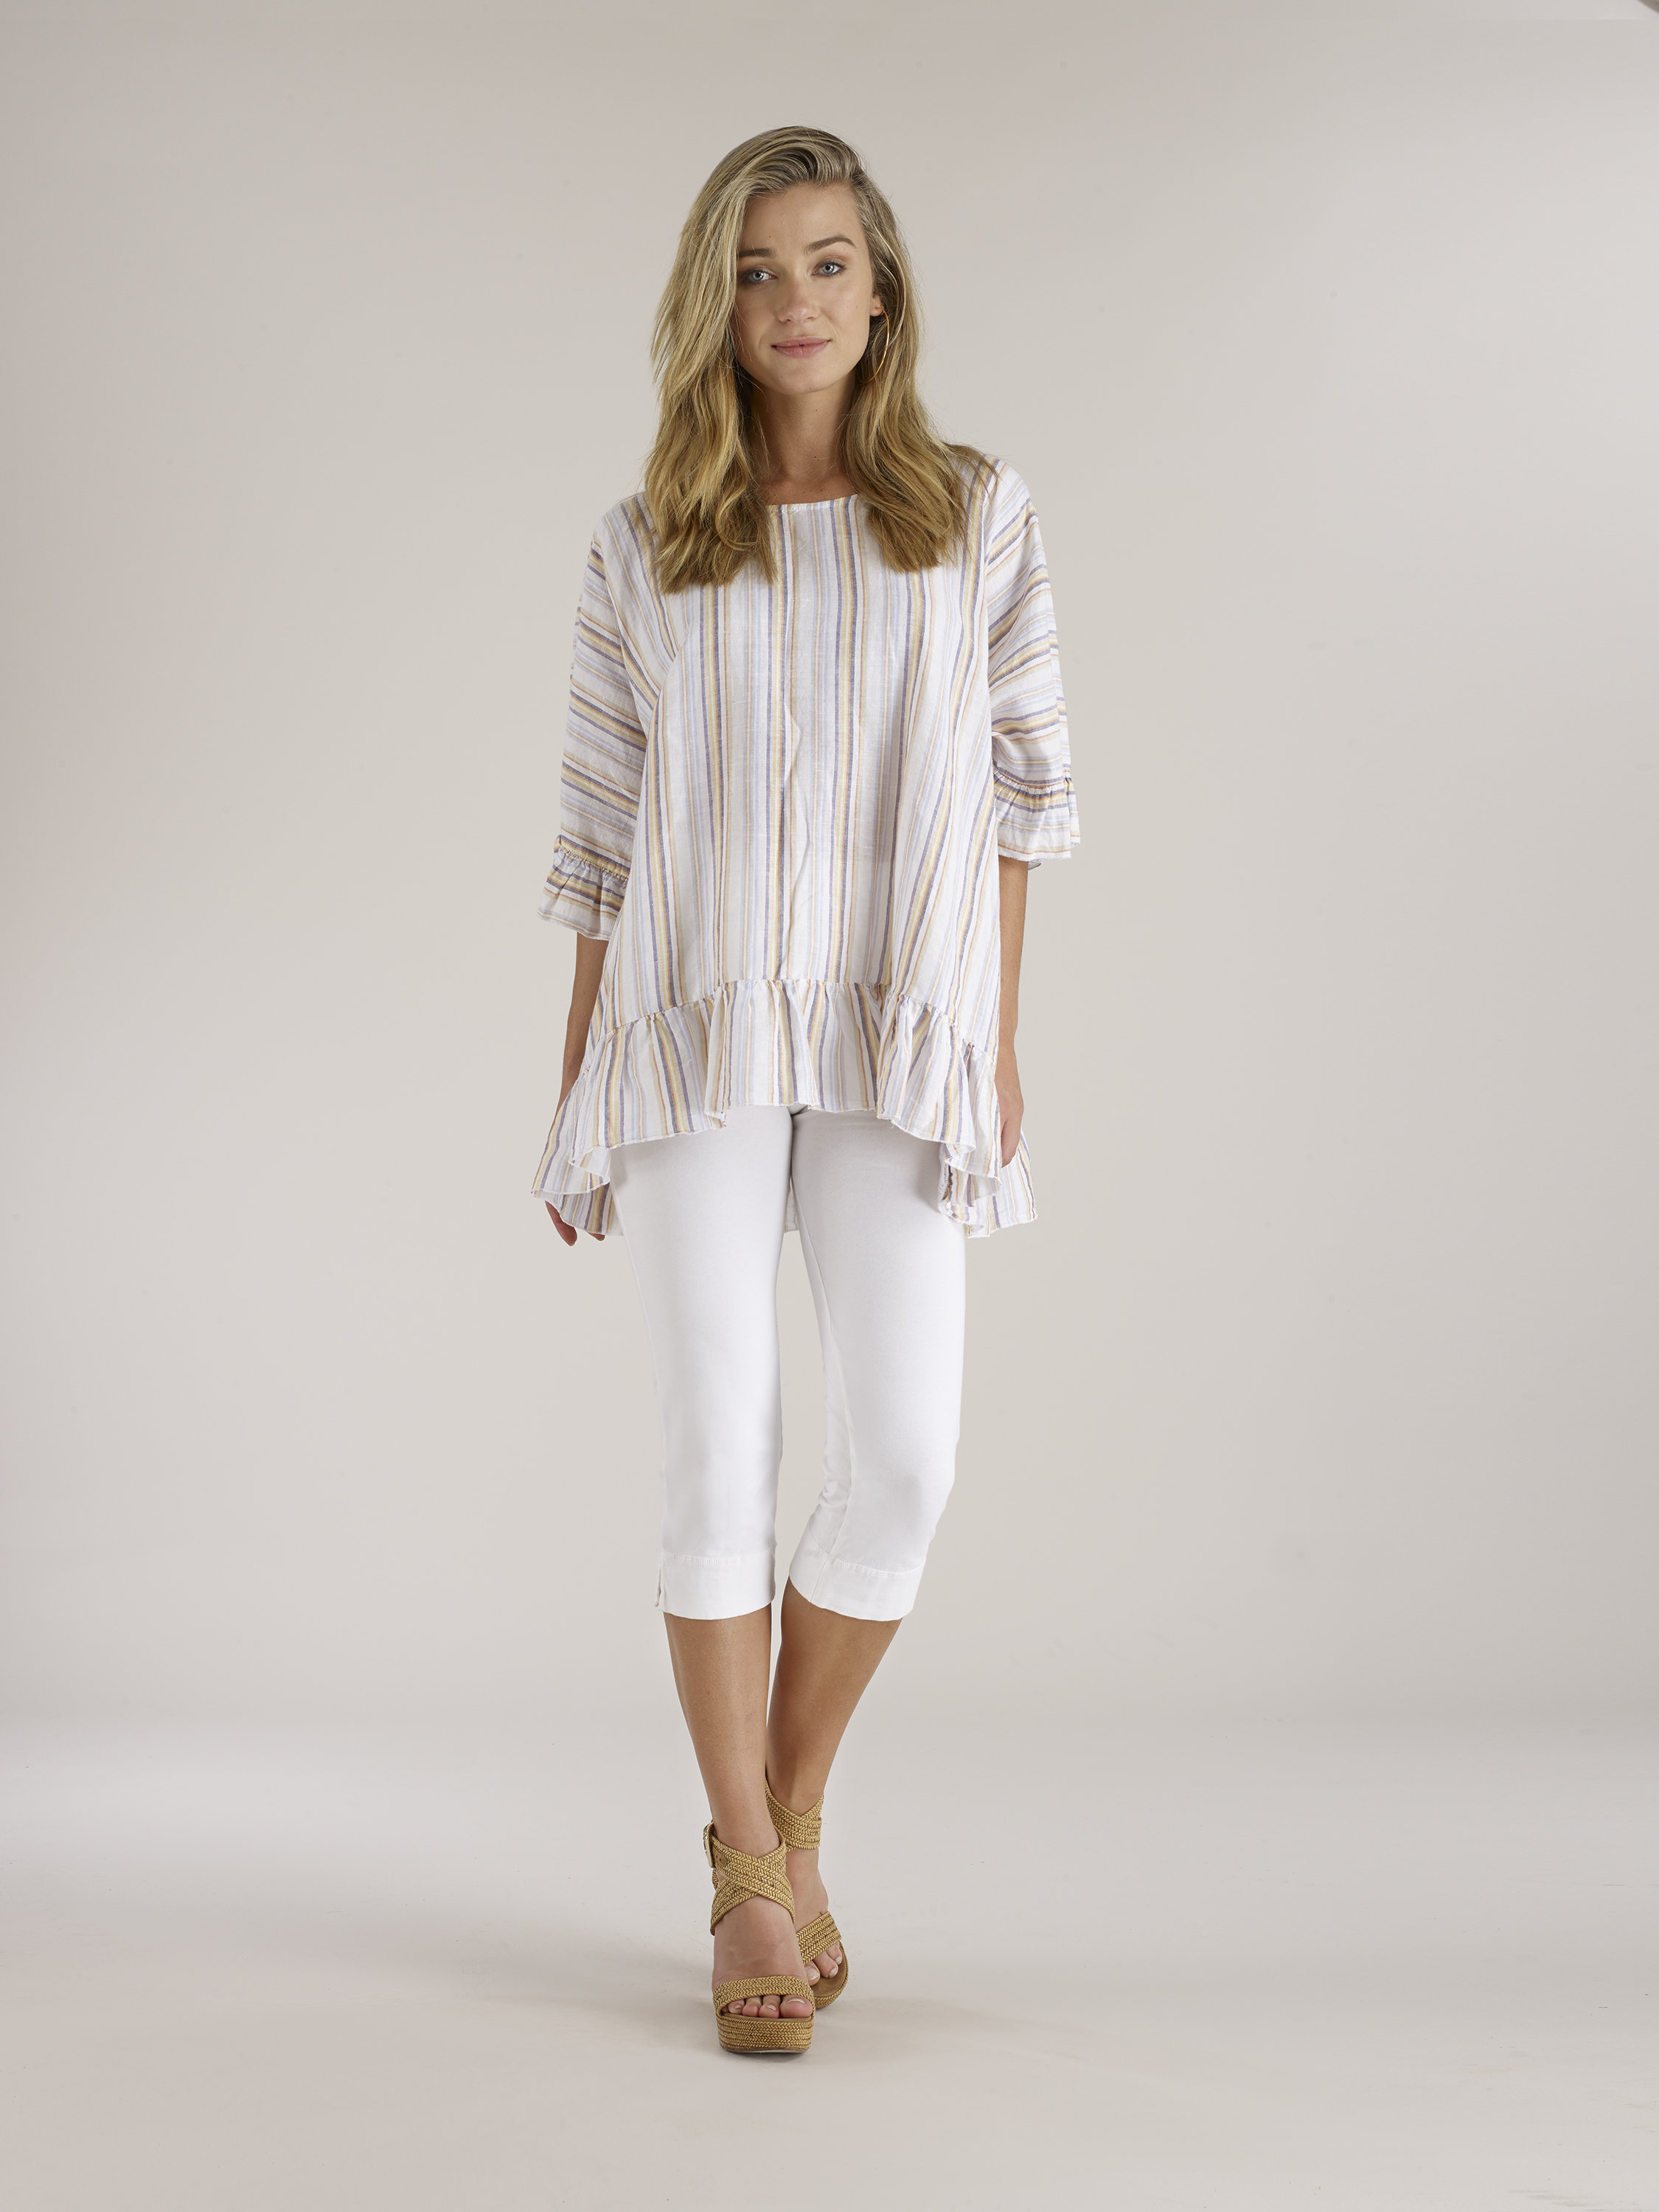 Luna Luz: Stripe High Low Ruffled Linen Tunic (More Colors, Ships Immed!)